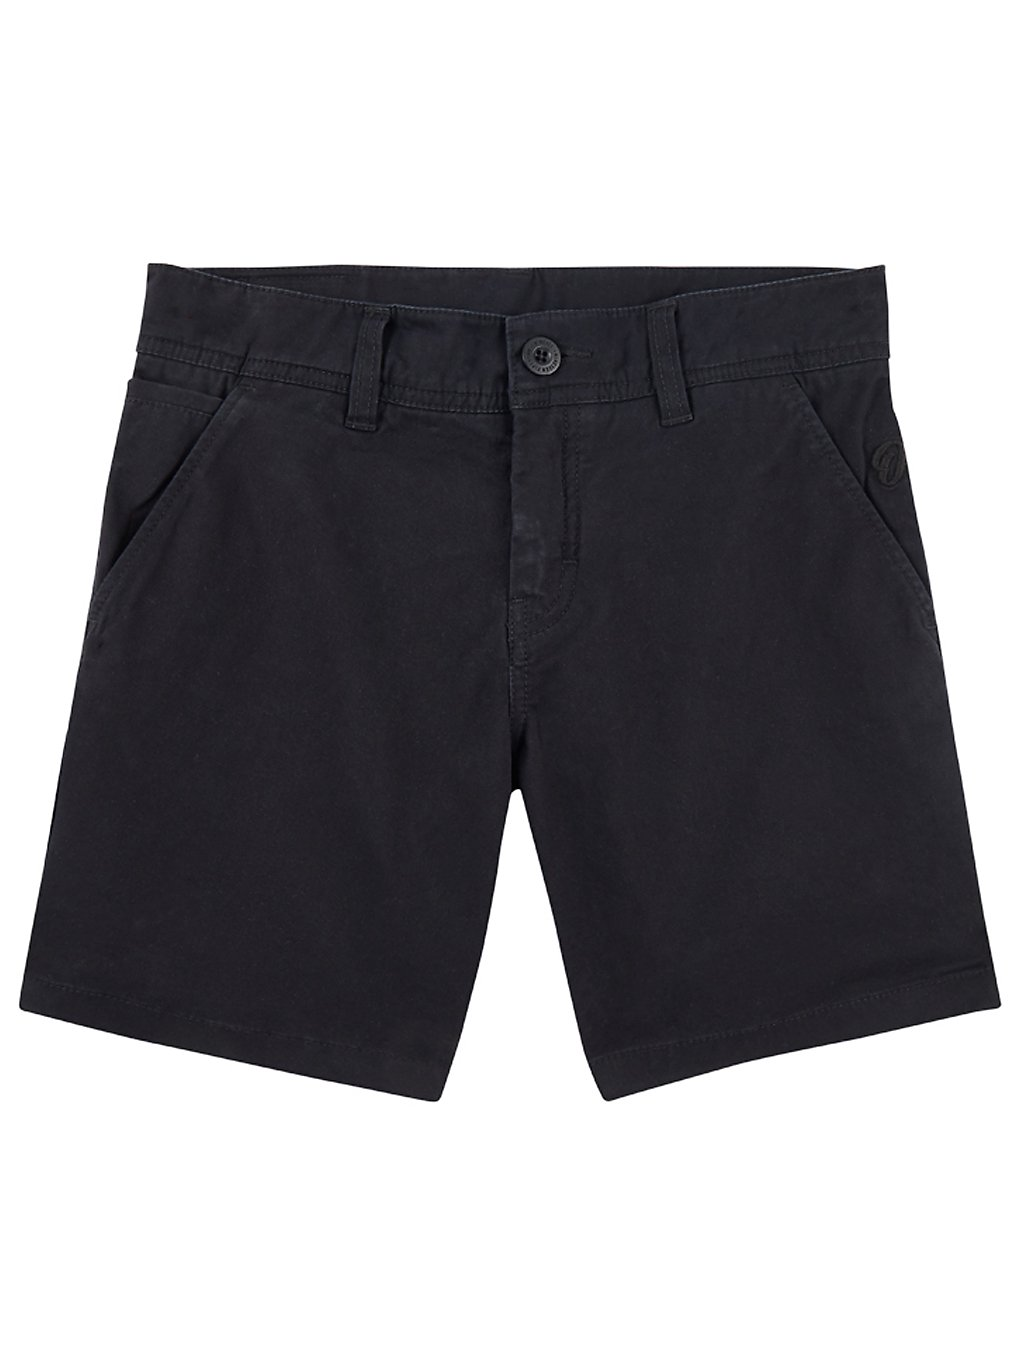 O'Neill Friday Night Chino Shorts black out